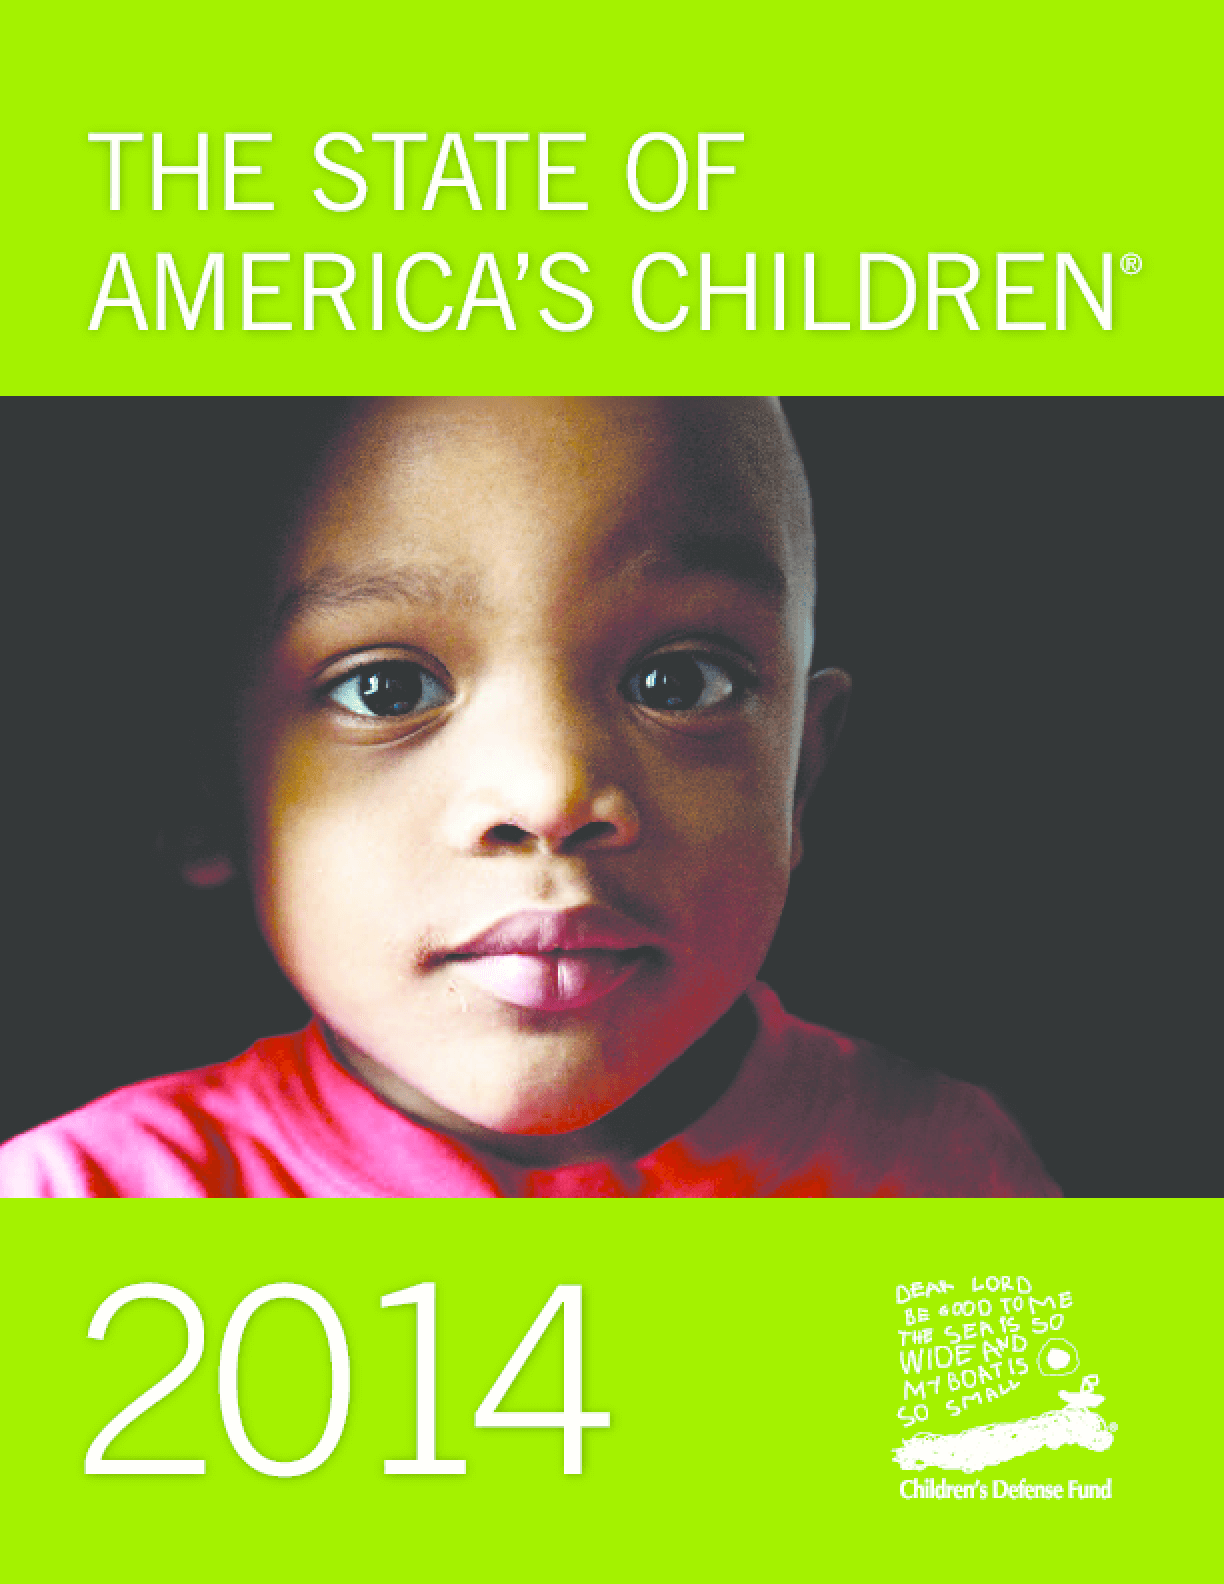 The State of America's Children: 2014